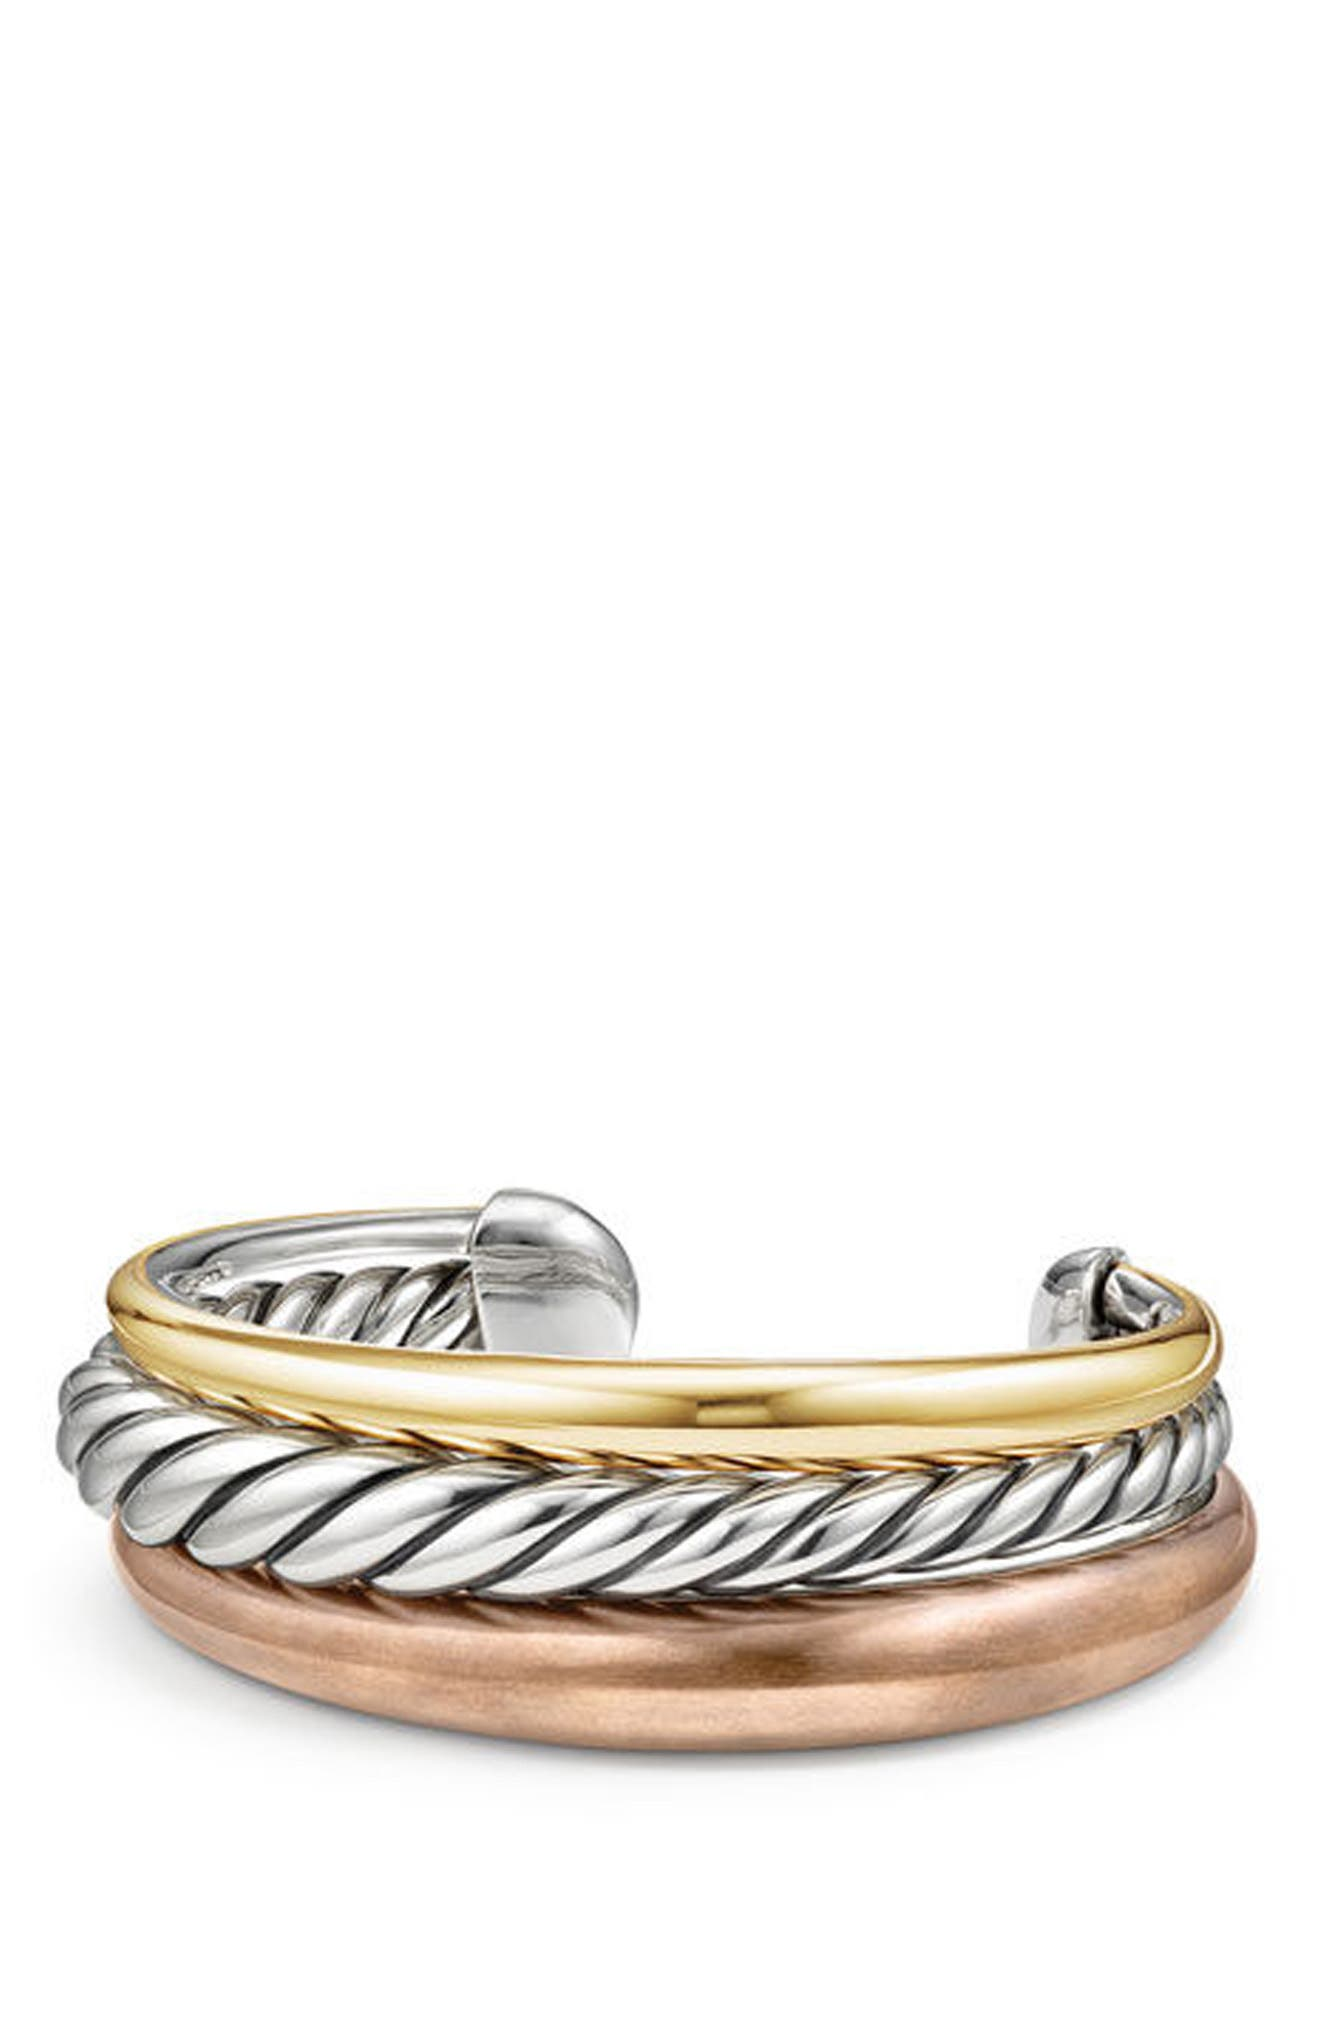 Pure Form Mixed Metal 3-Row Cuff,                         Main,                         color, Silver